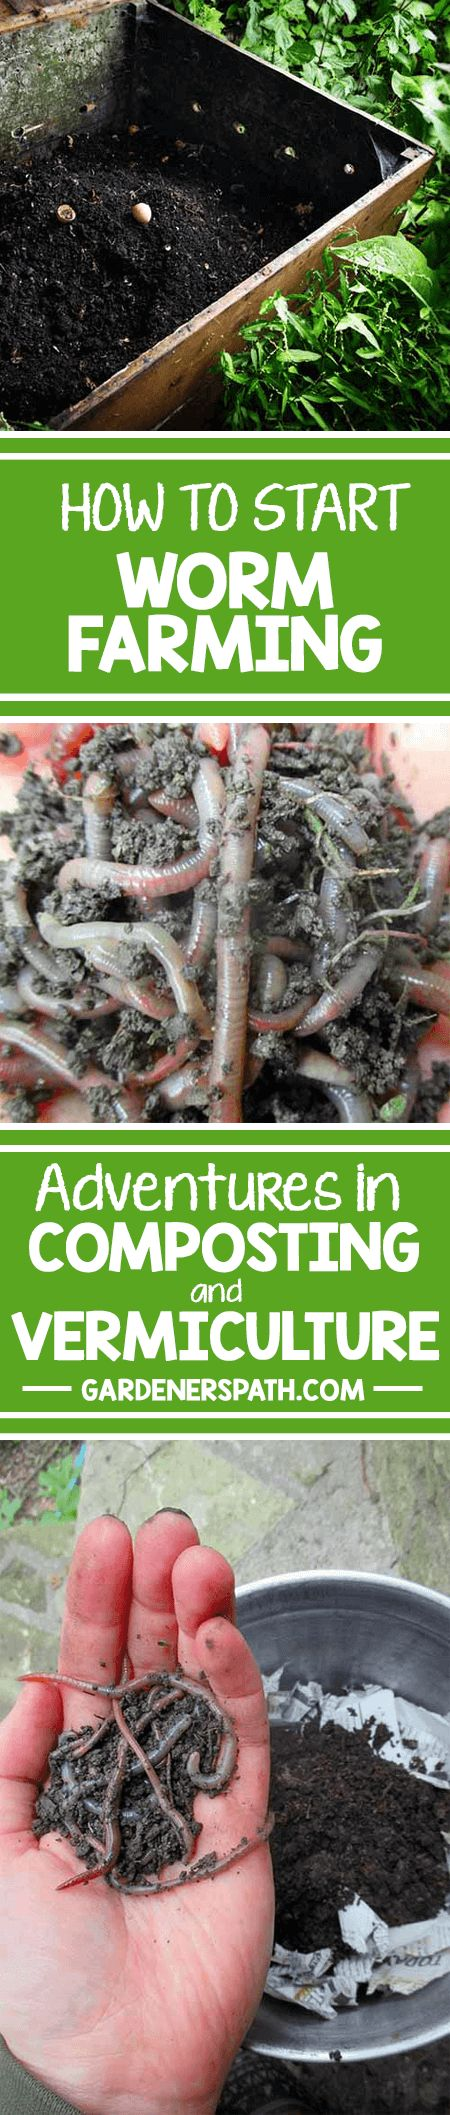 Earthworms are amazing garden pals – and powerful composters. Learn how to harness their talents by vermicomposting, and start your own home DIY worm farm! http://gardenerspath.com/how-to/composting/worm-farming-vermiculture/